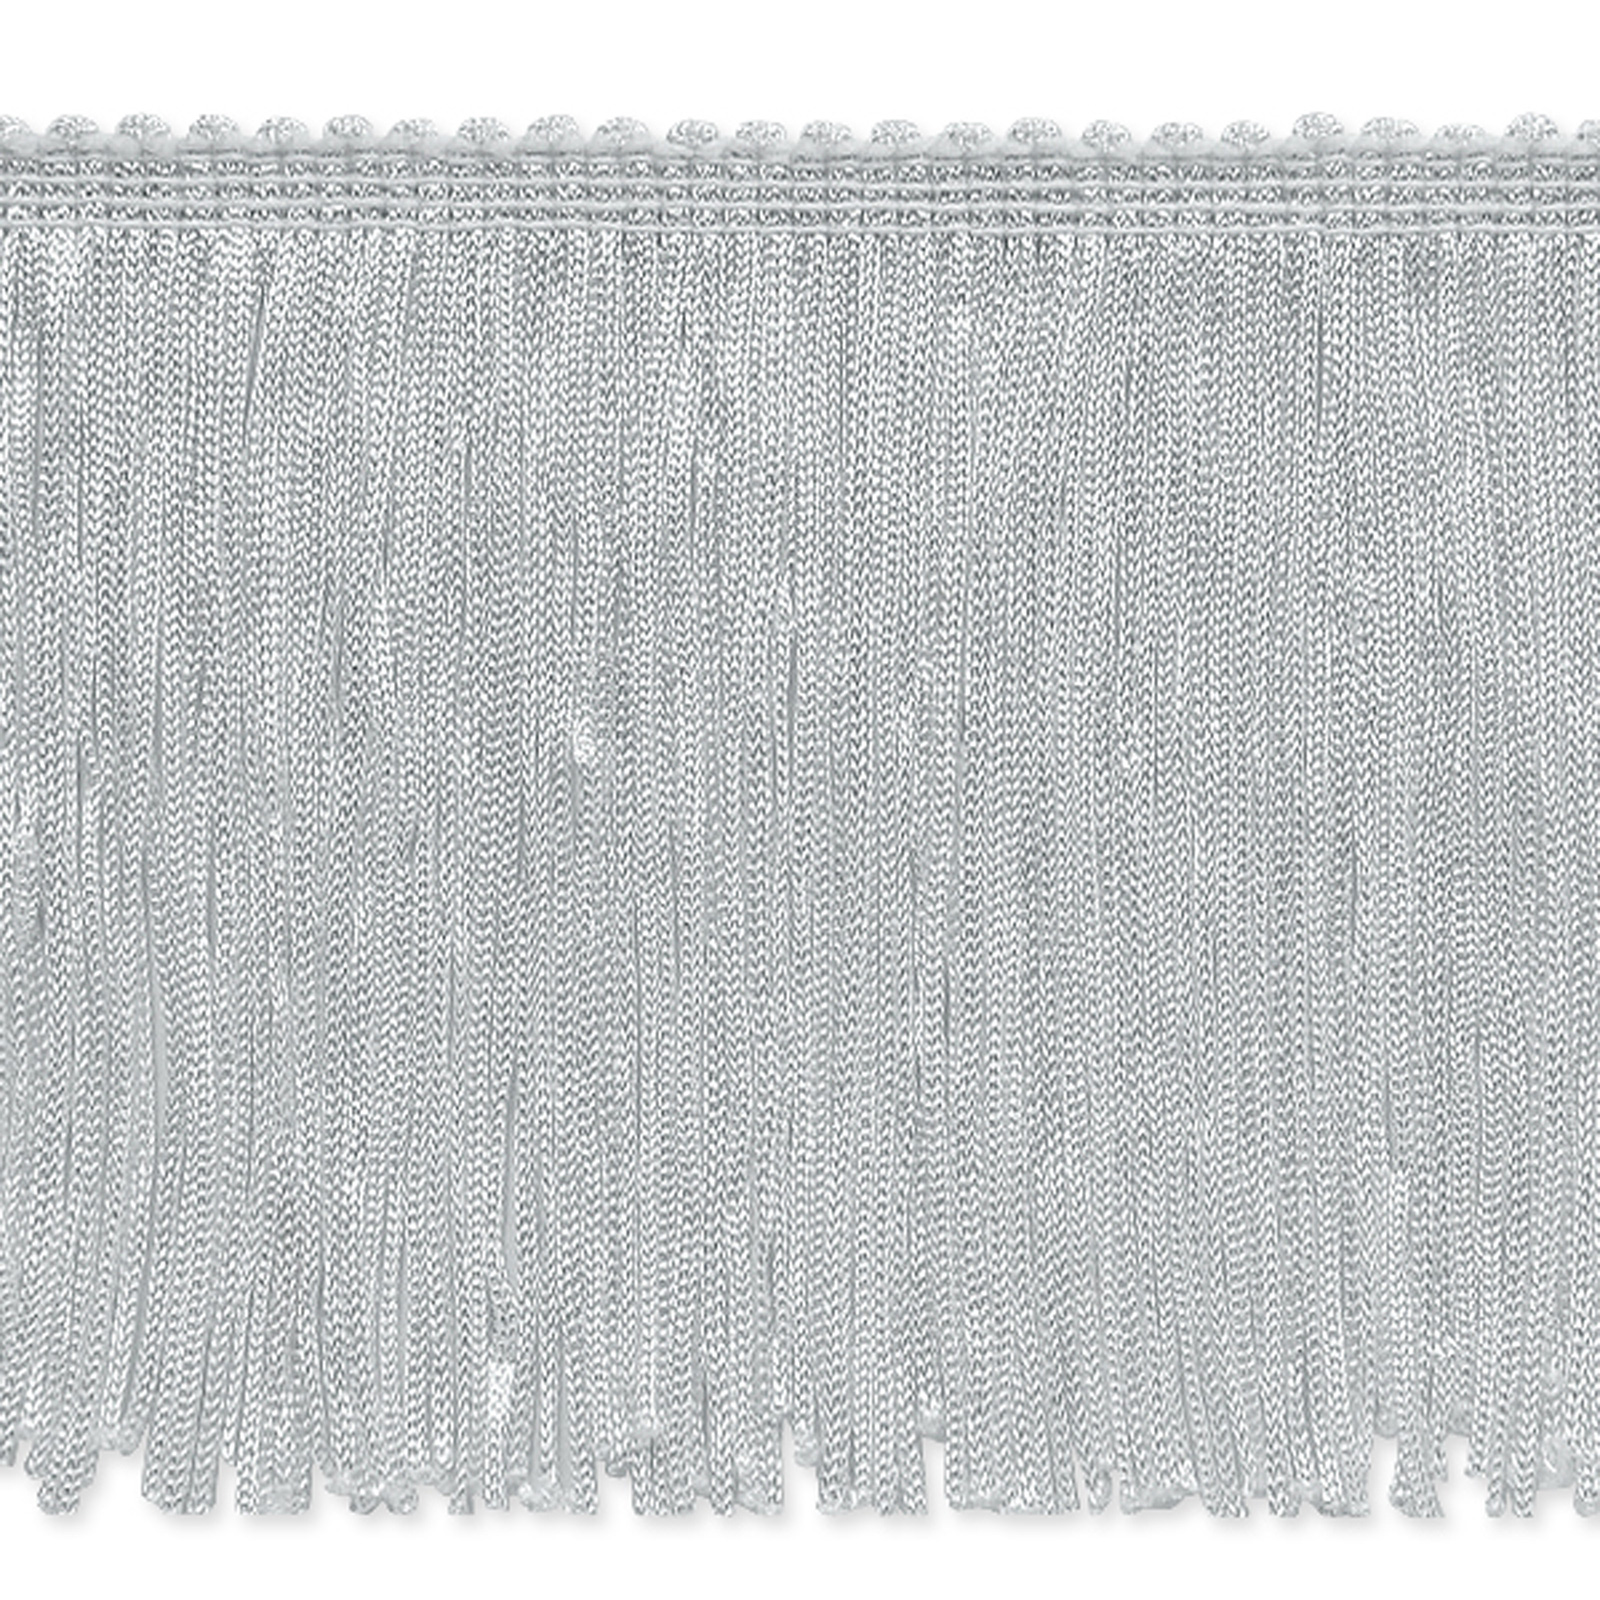 4'' Stretch Chainette Fringe Trim White by Expo in USA